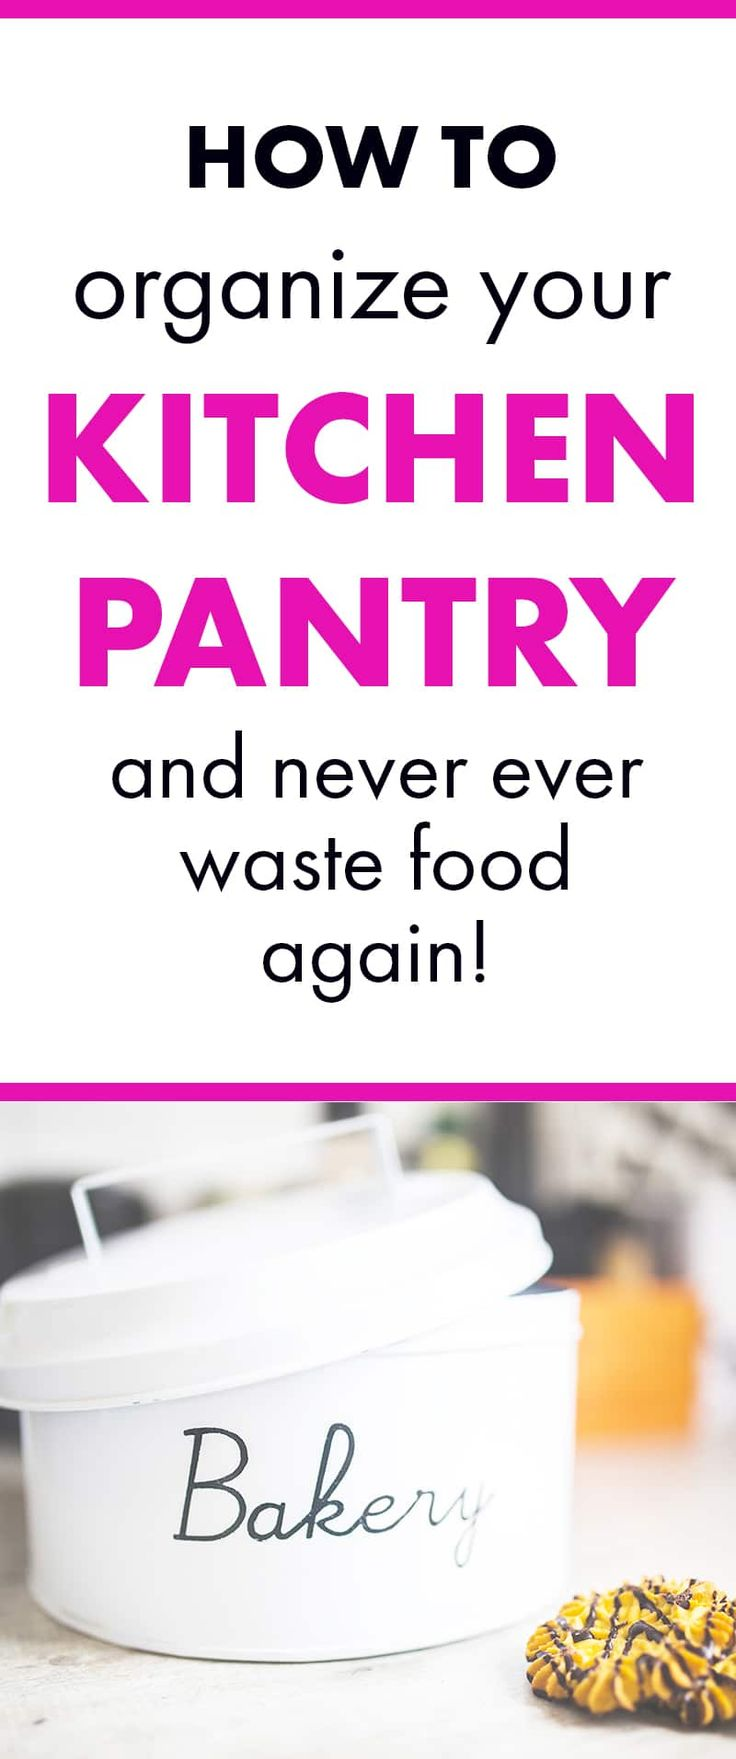 How to Organize Your Kitchen Pantry and Never Waste Food Again   Smart Mom Ideas